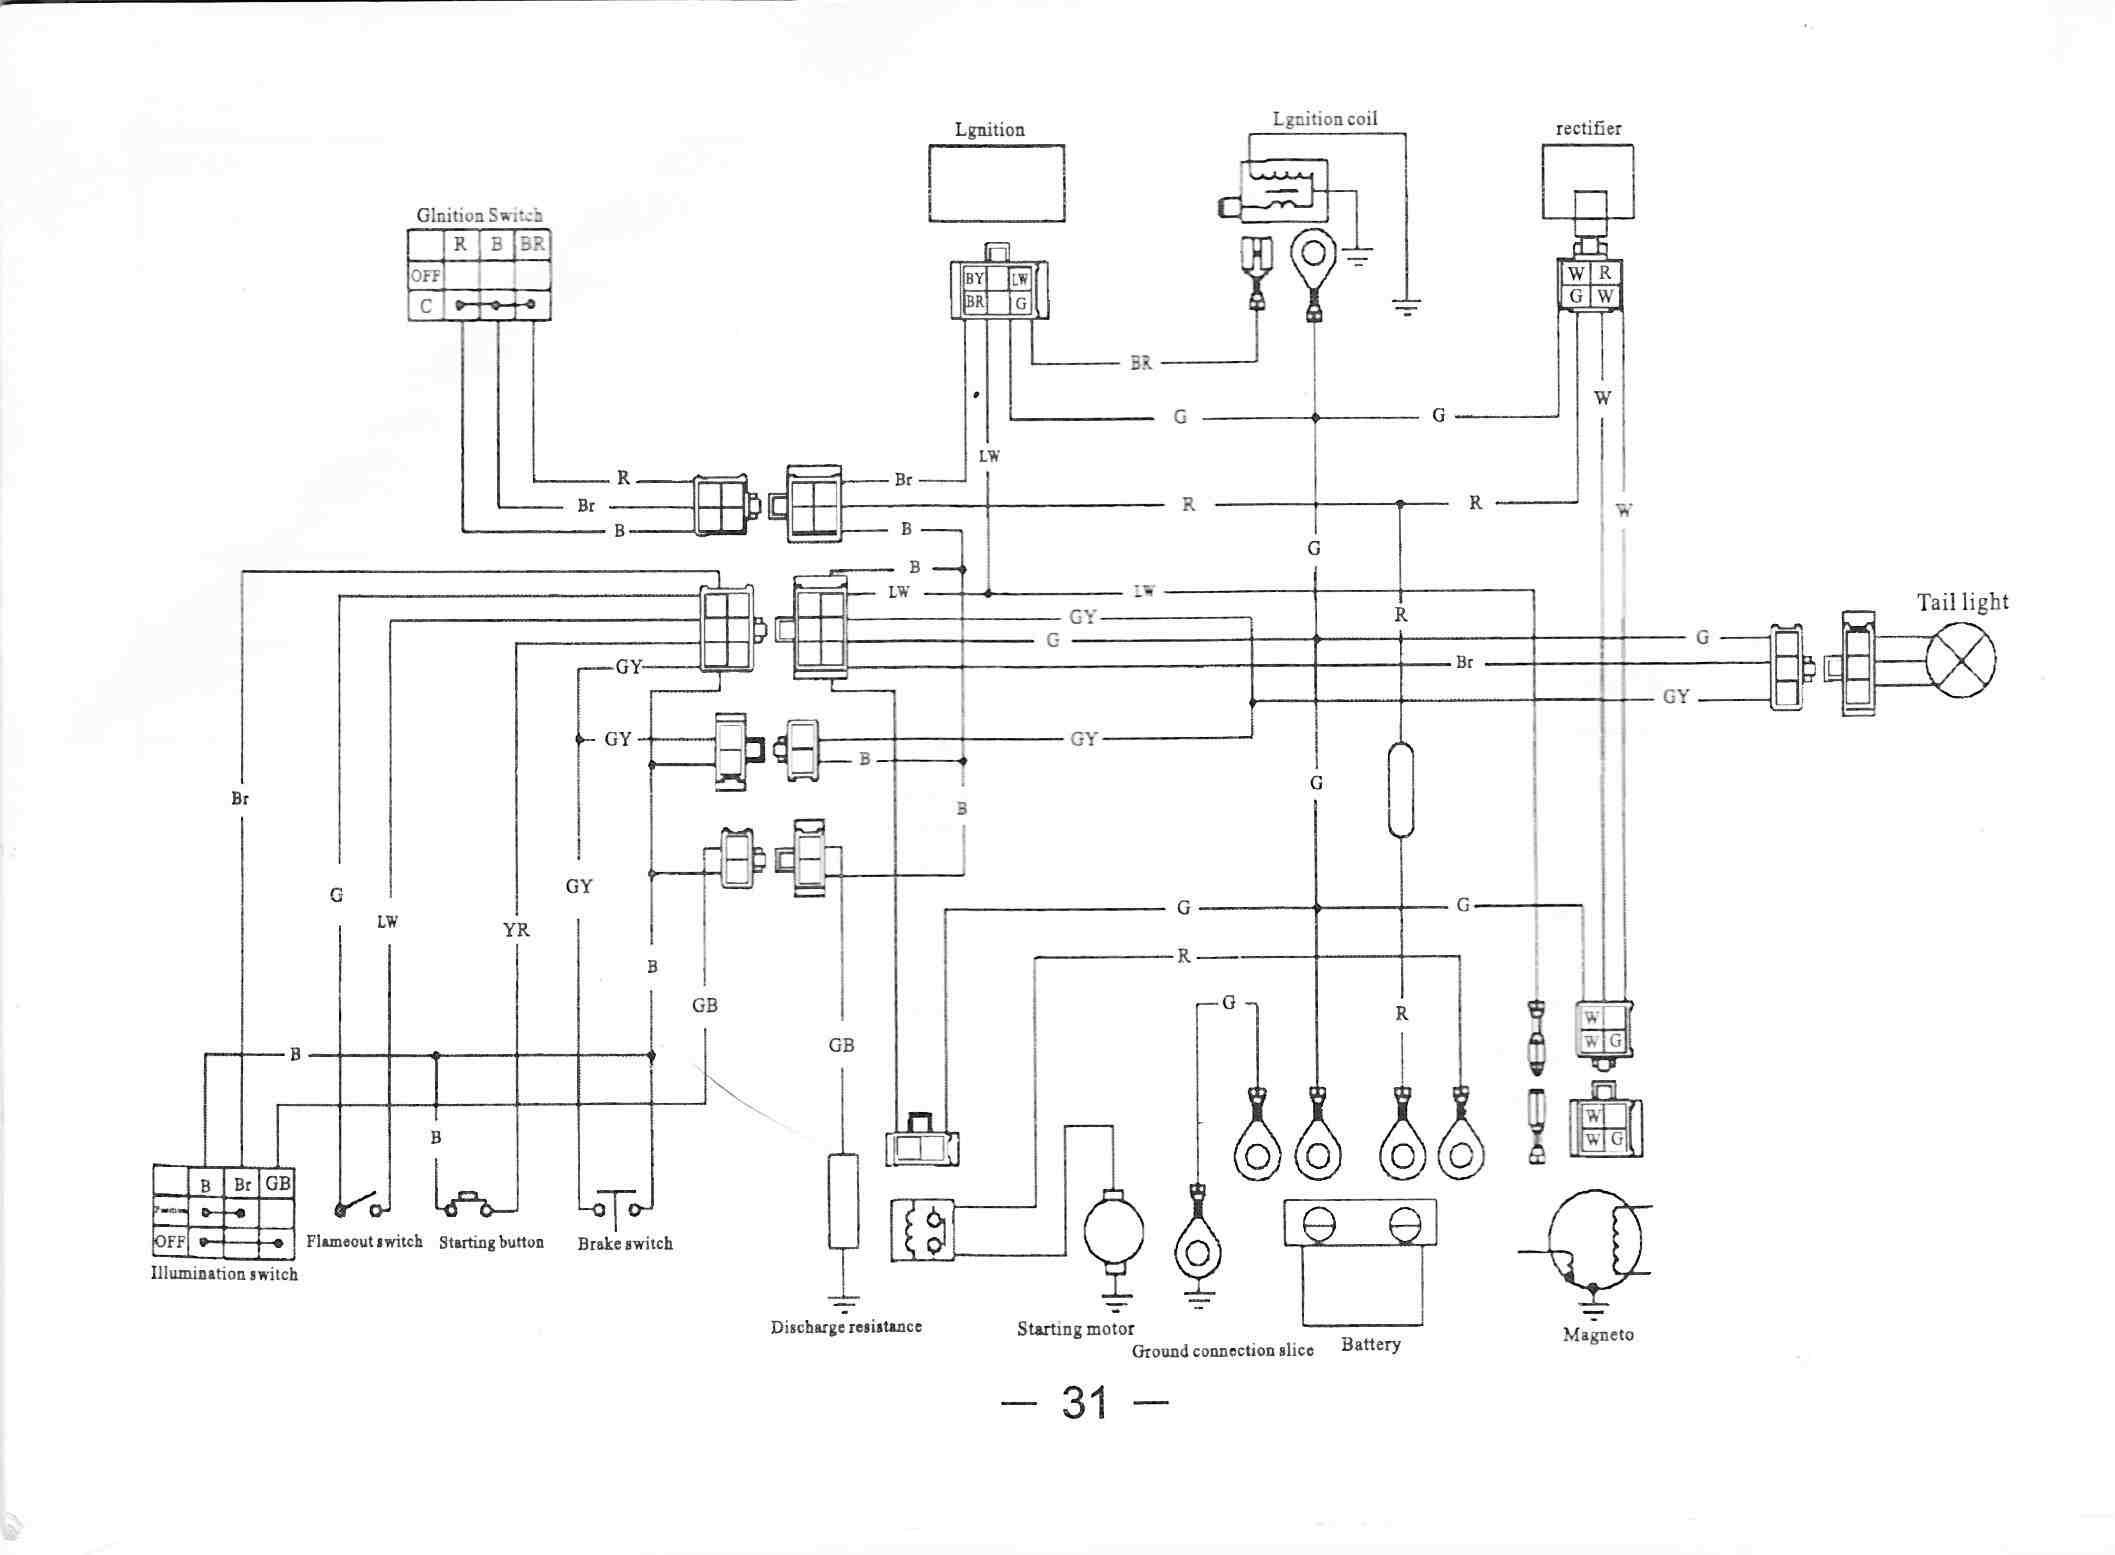 yamaha raptor 250 atv wiring schematics wiring diagram database wiring schematic for a 1997 ymf yamaha 250 four wheeler [ 2115 x 1555 Pixel ]